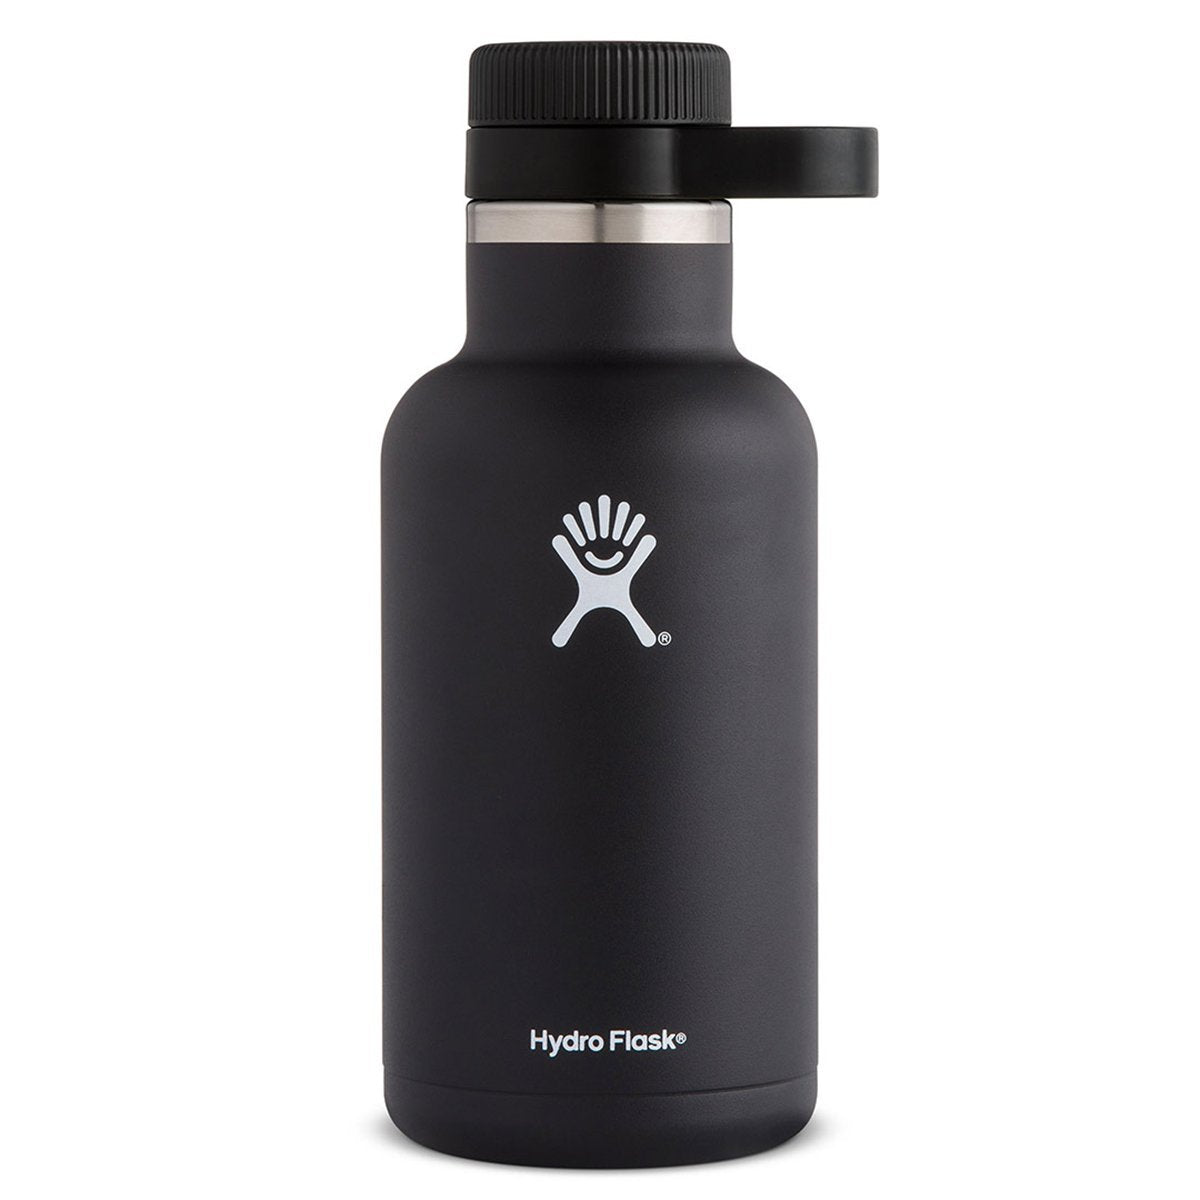 Hydro Flask - 64 oz Growler » Insulated, Stainless Steel Beer Growler - Black